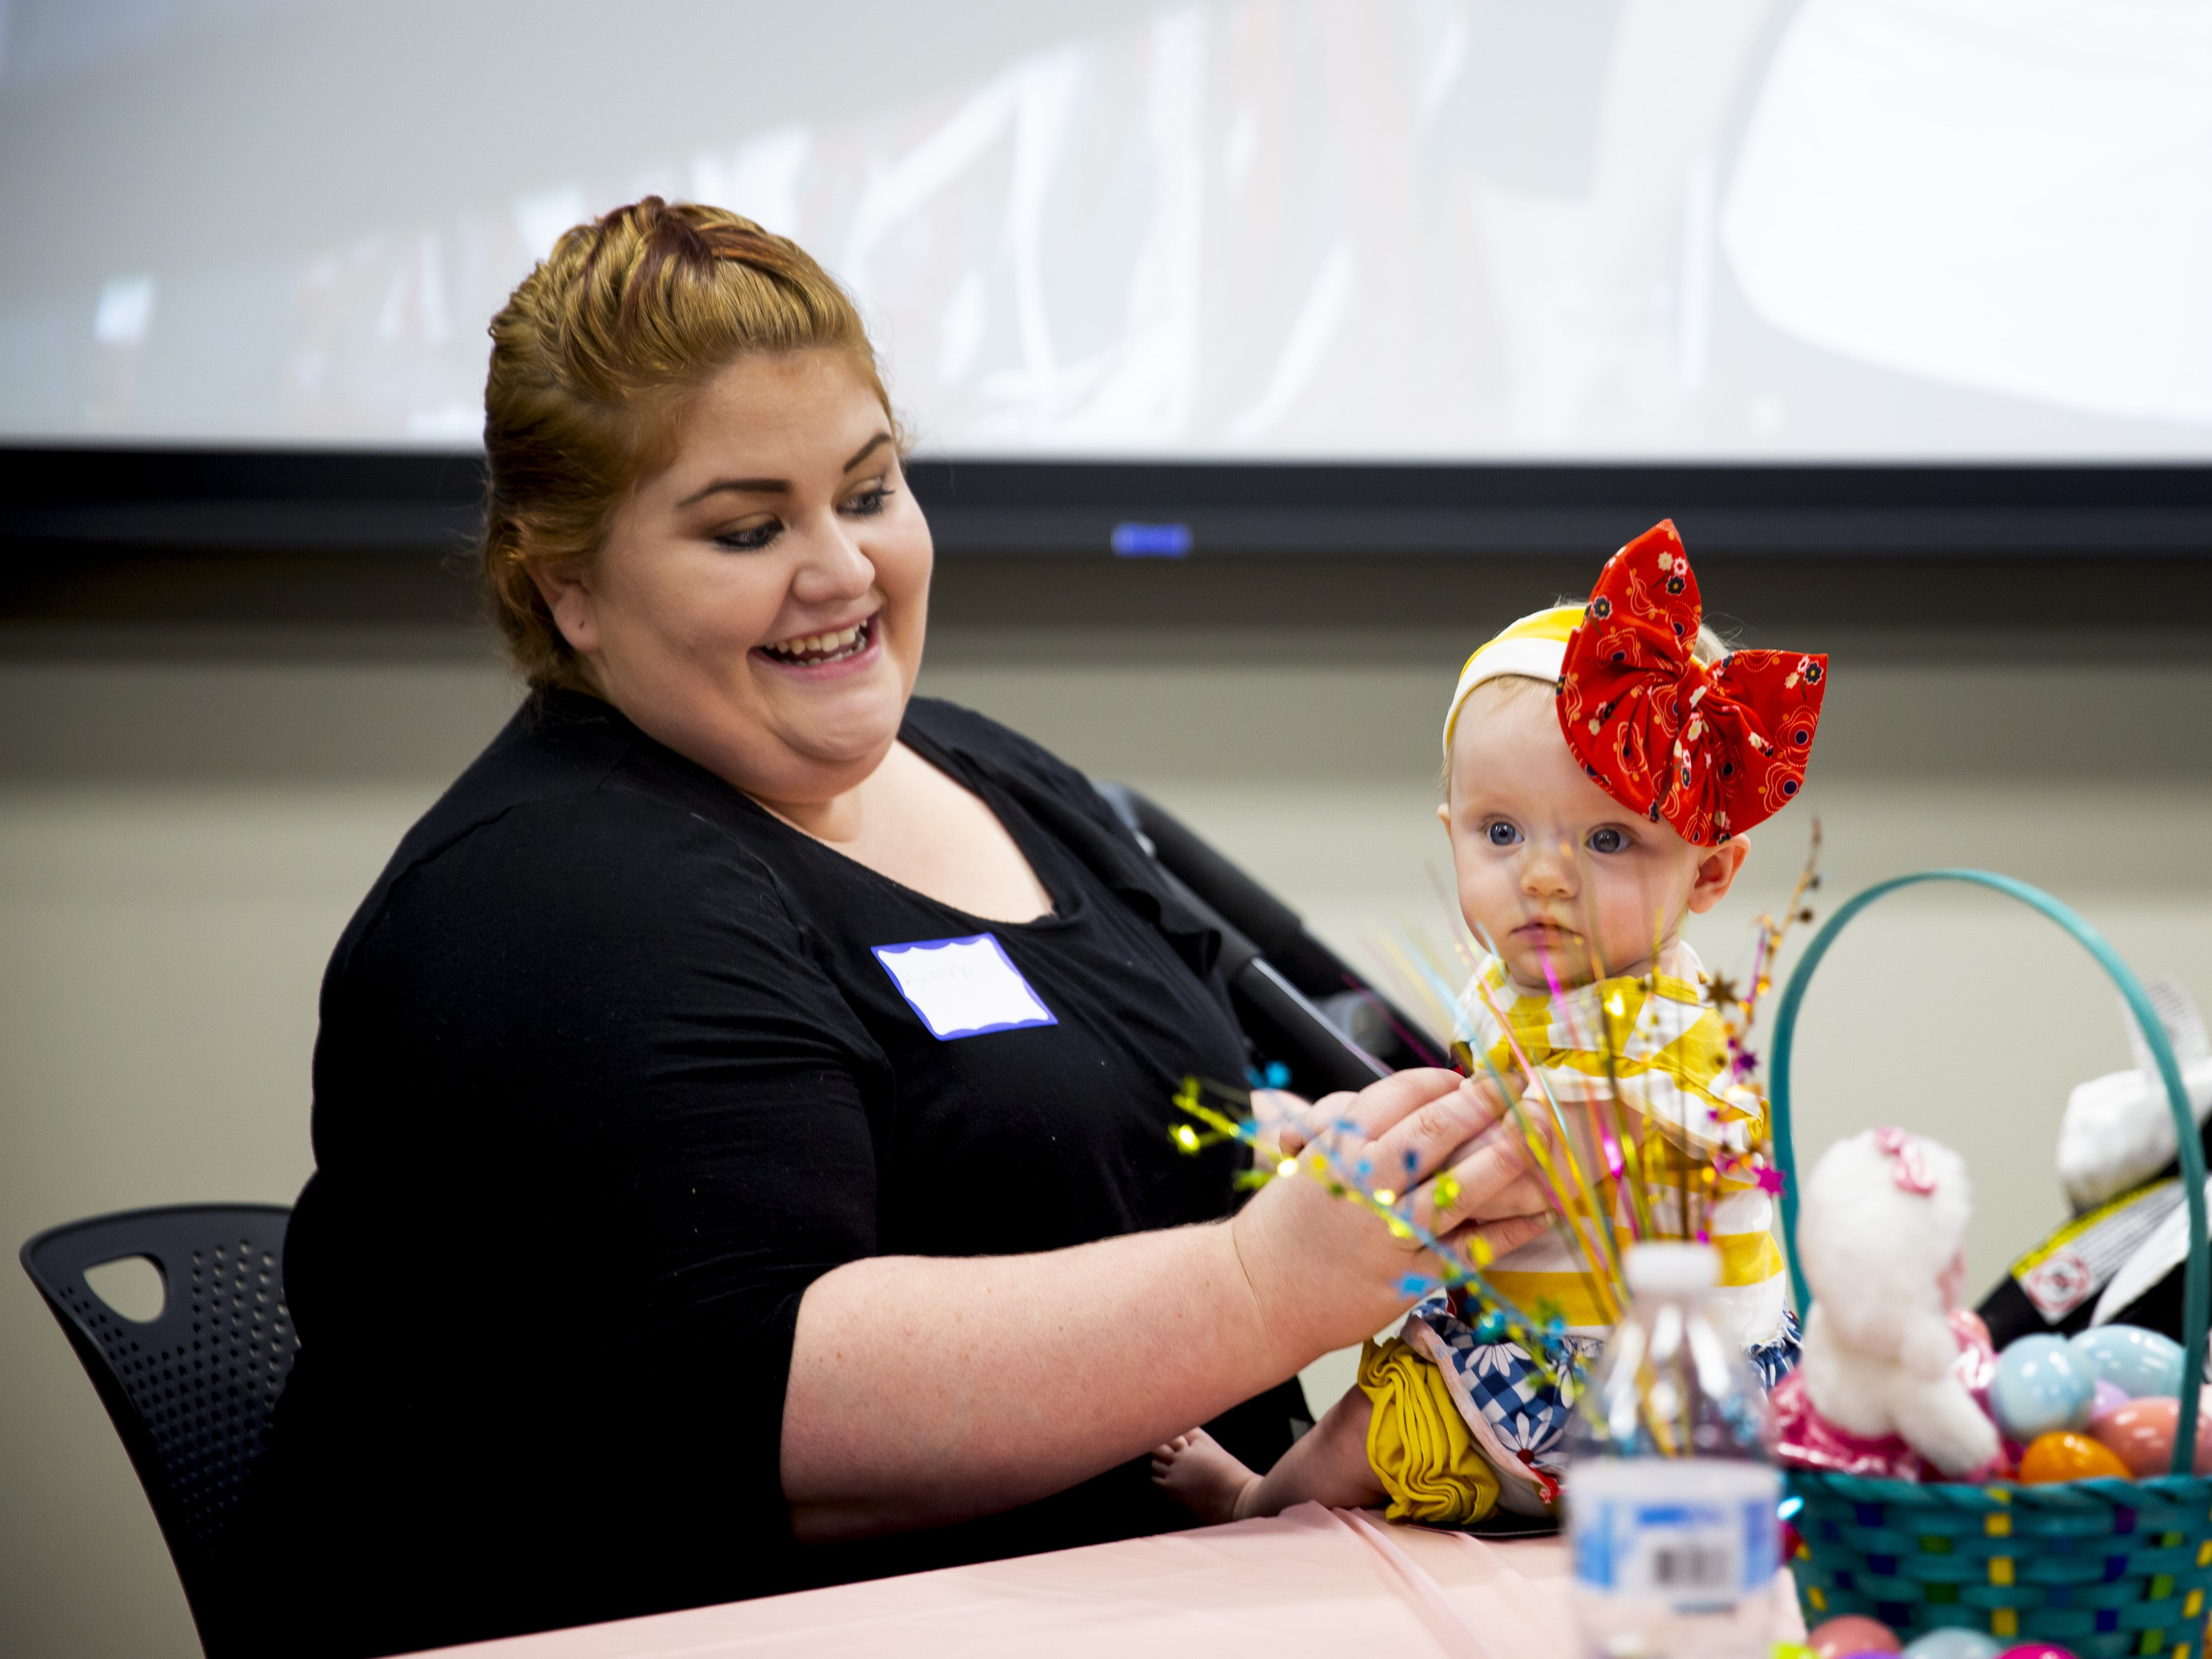 Brianna Jackson sets her 8-month-old daughter Aurora on a table at the Preemie NICU Reunion at Banner University Medical Center on April 13, 2019.